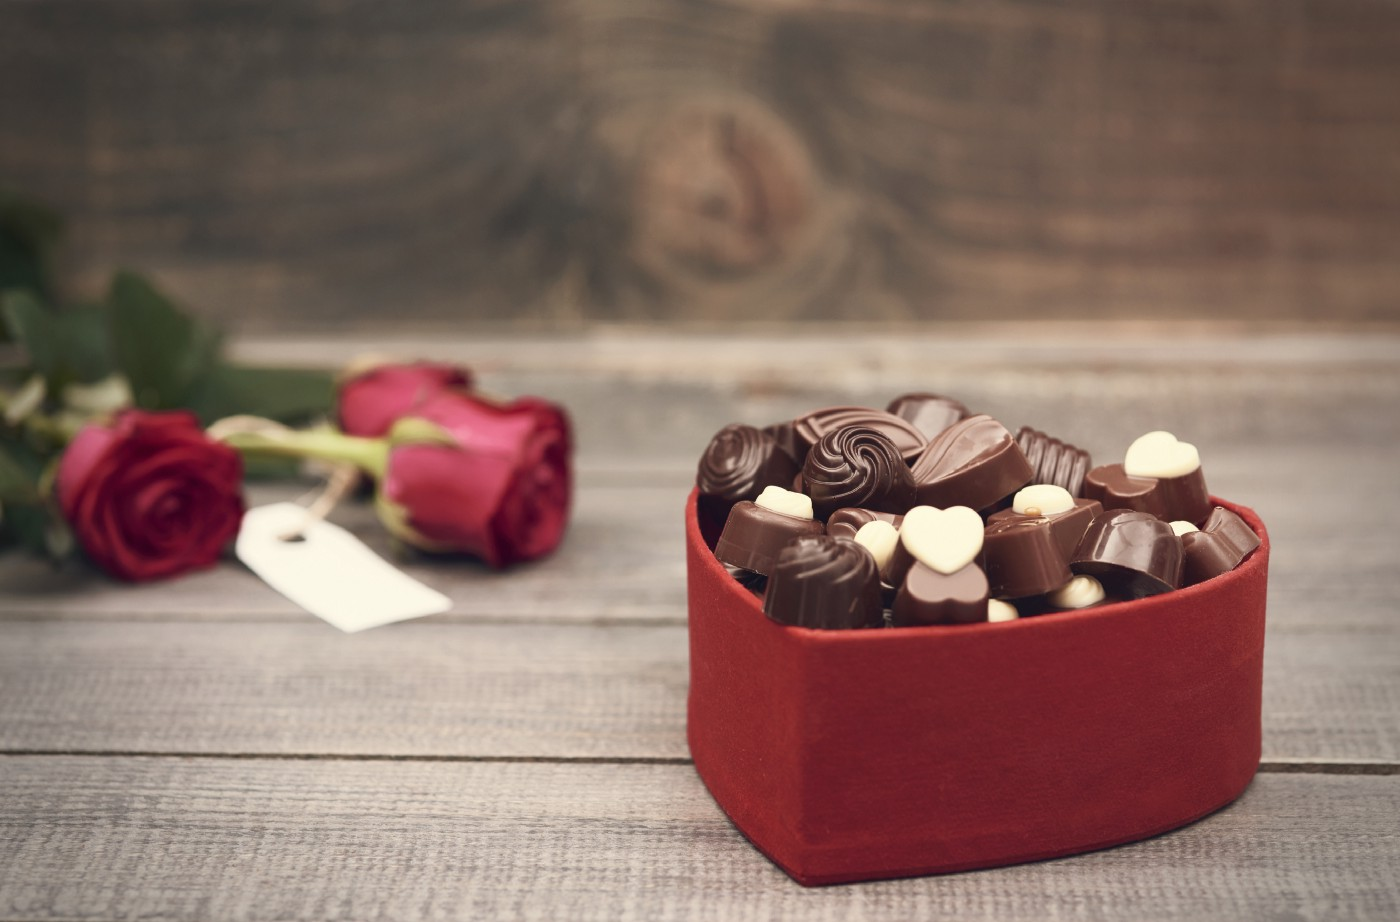 A box of chocolates next to roses.